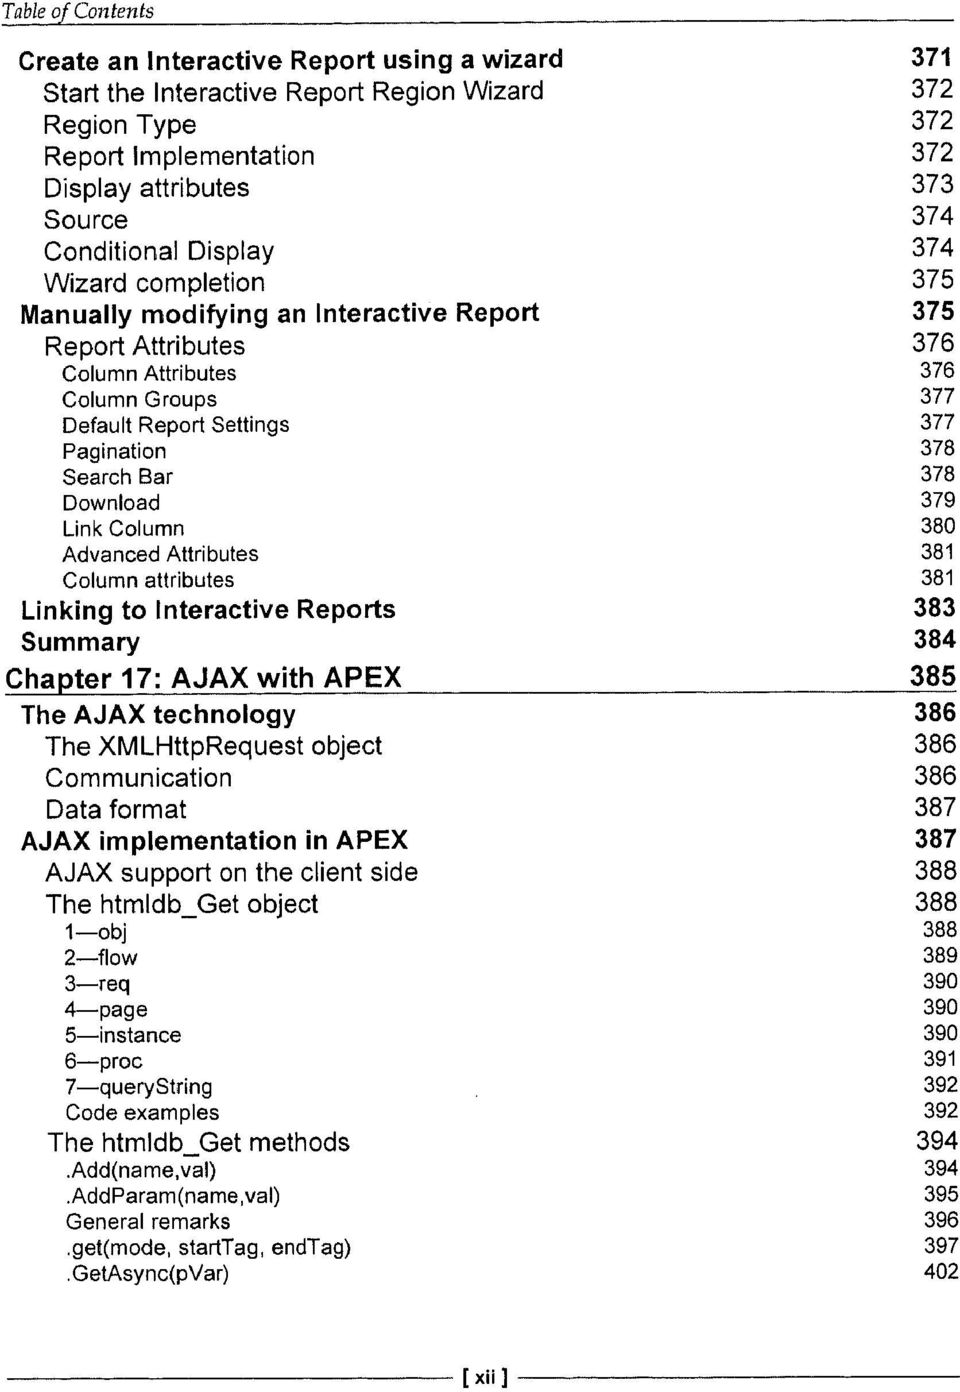 Link Column 380 Advanced Attributes 381 Column attributes 381 Linking to Interactive Reports 383 Summary 384 Chapter 17: AJAX with APEX 385 The AJAX technology 386 The XMLHttpRequest object 386